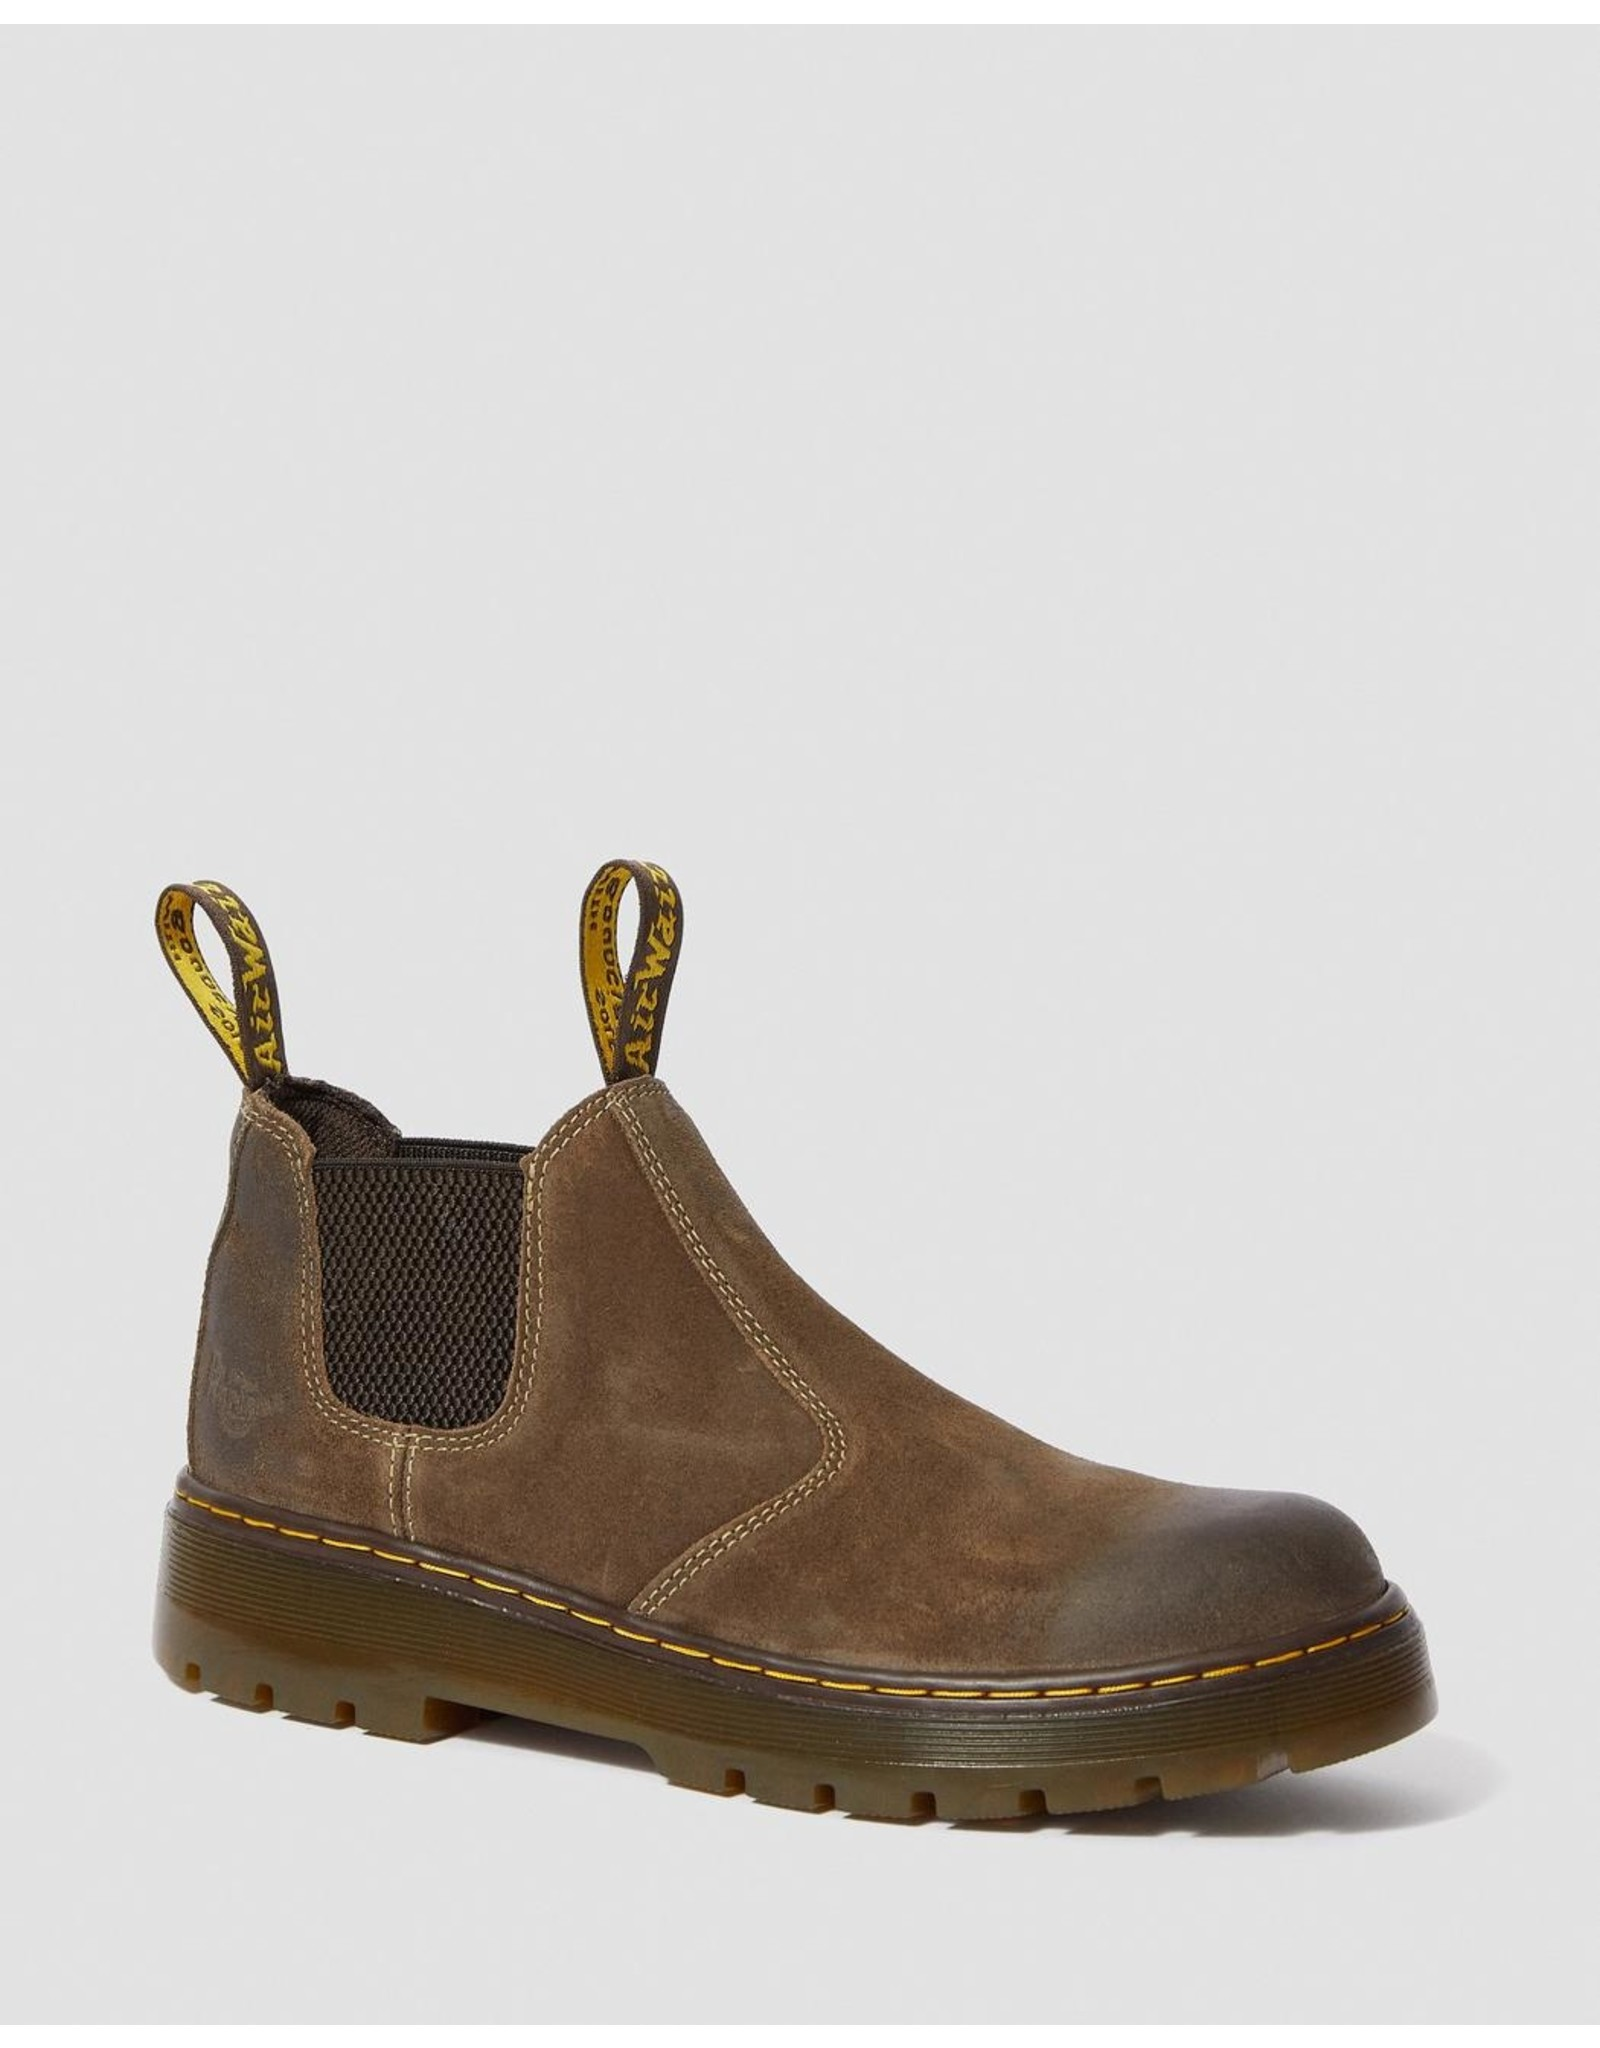 DR. MARTENS HARDIE WAXY SUEDE WP